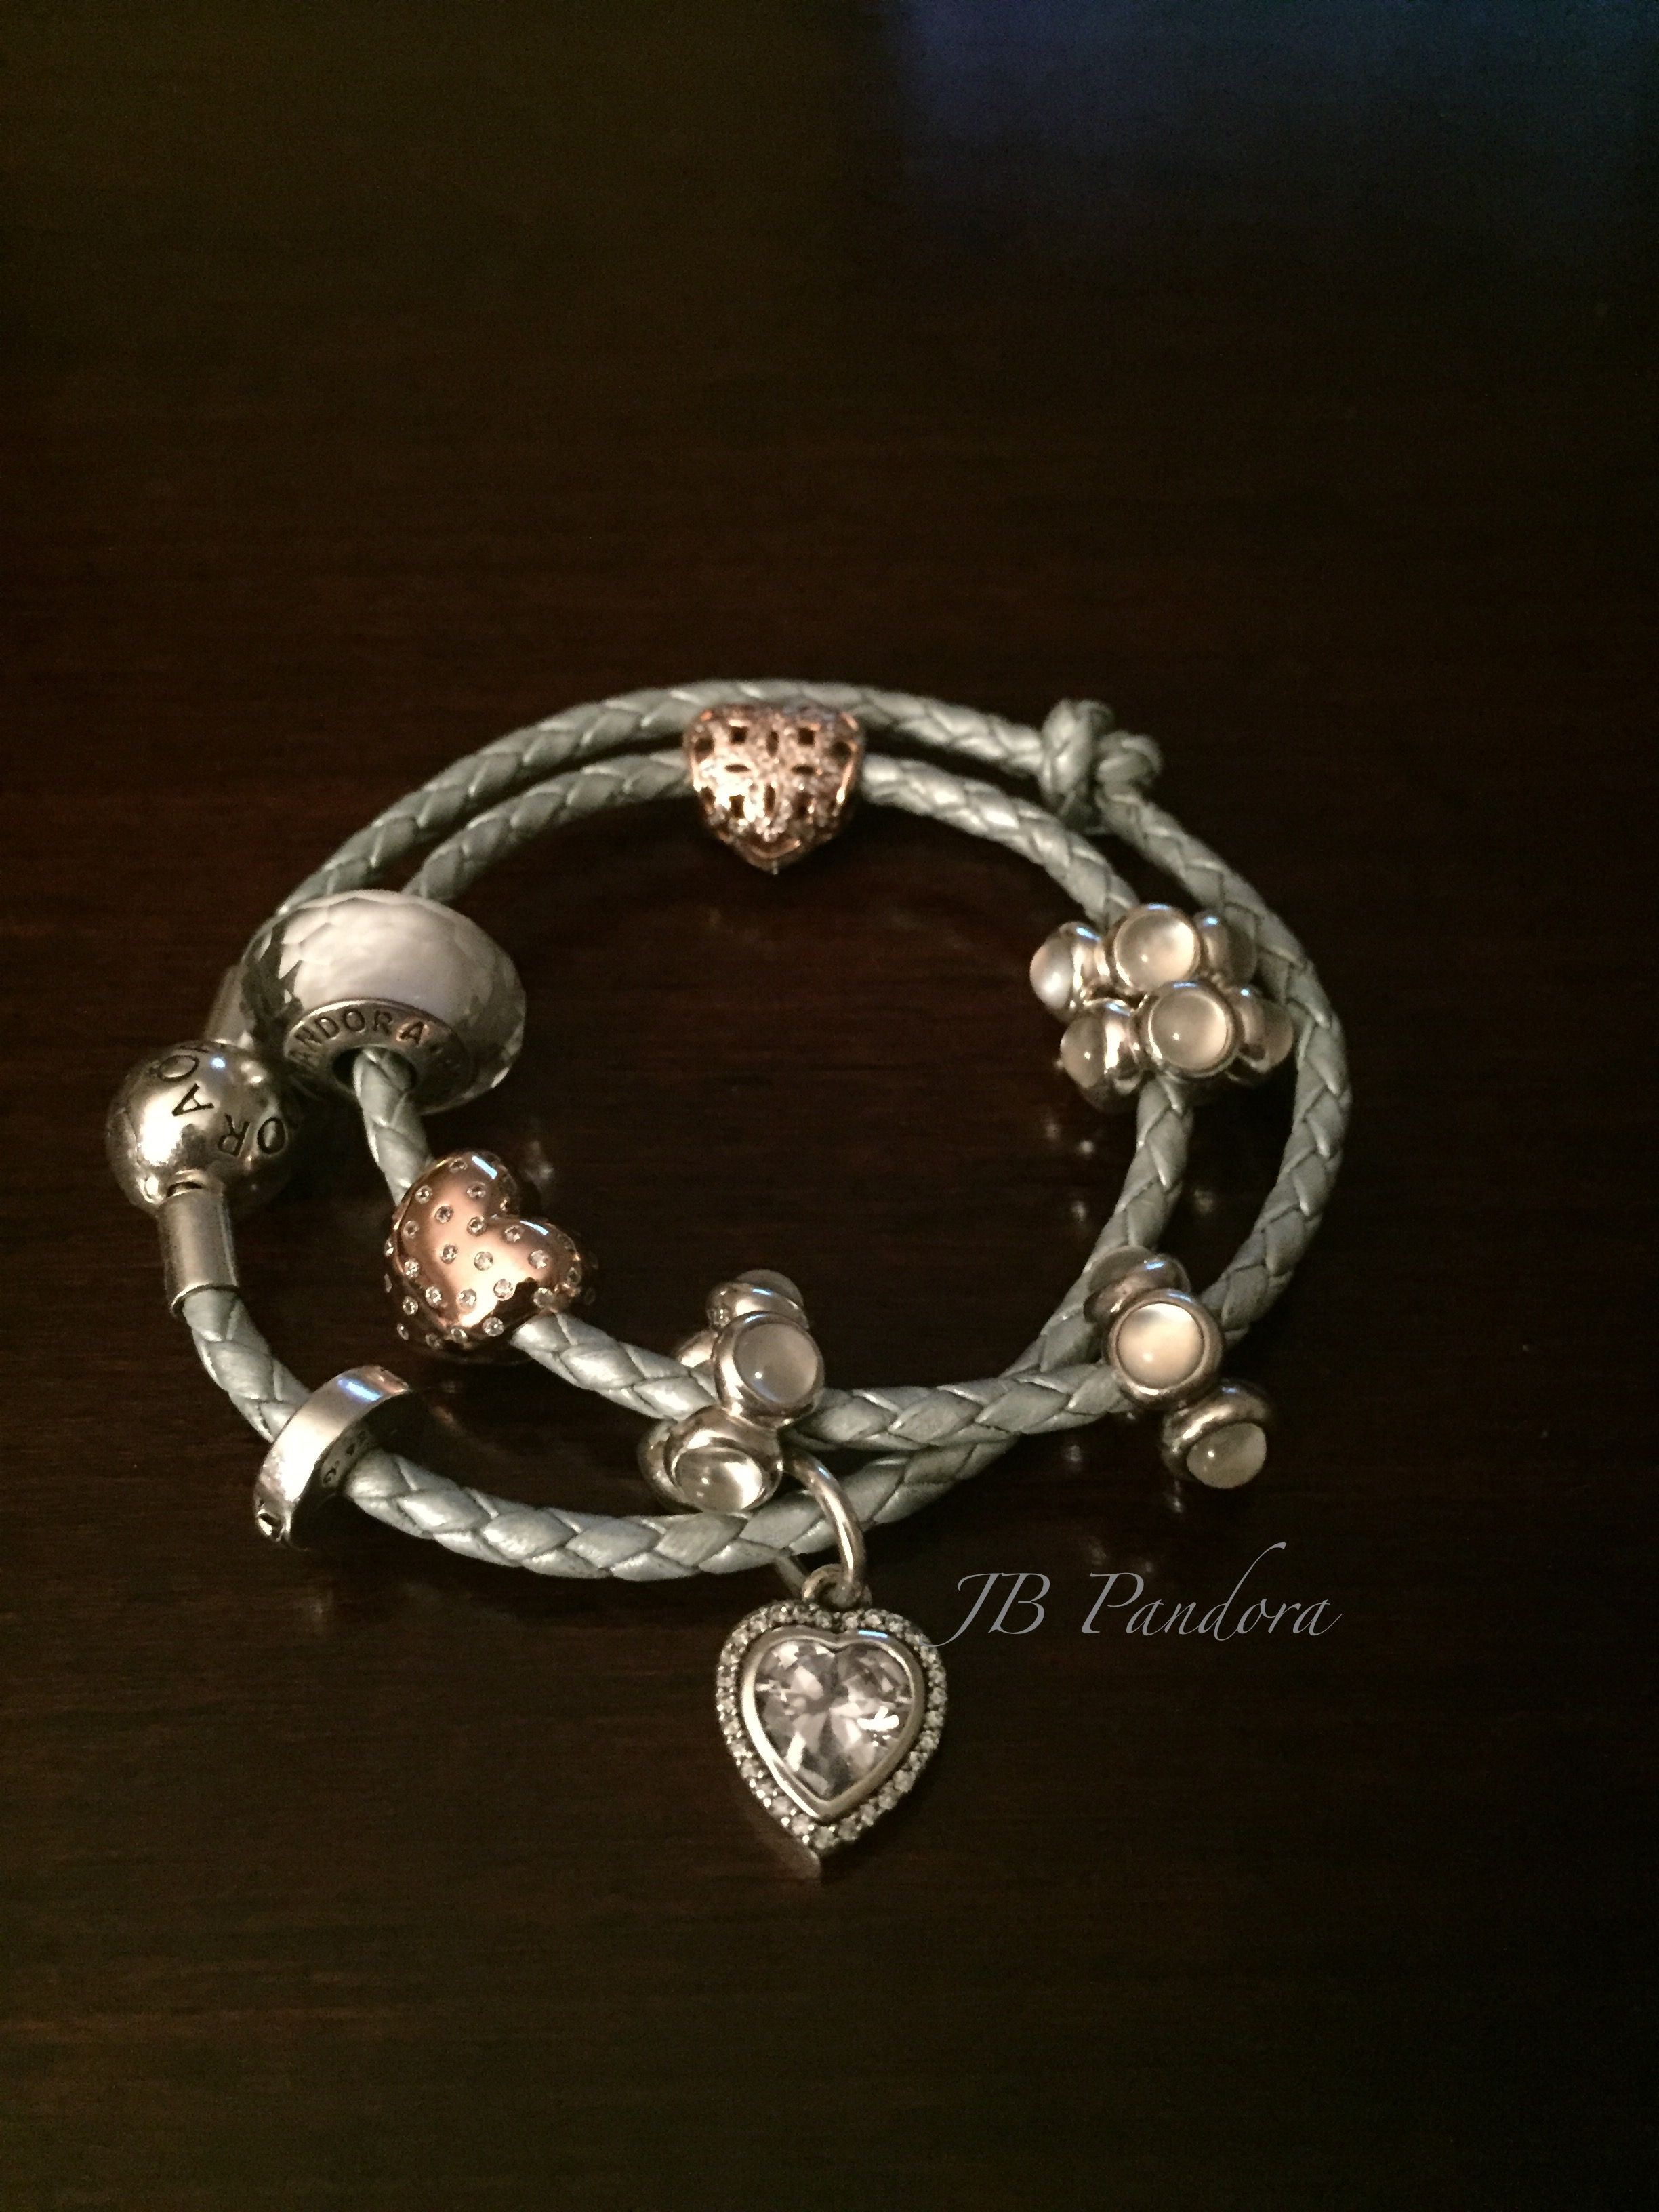 8d06f8e8d Pandora light blue leather bracelet with rose gold charms; Love and  Appreciation 780003CZ Sparkle of Love781241CZ and white moonlight kiss  cabochons.